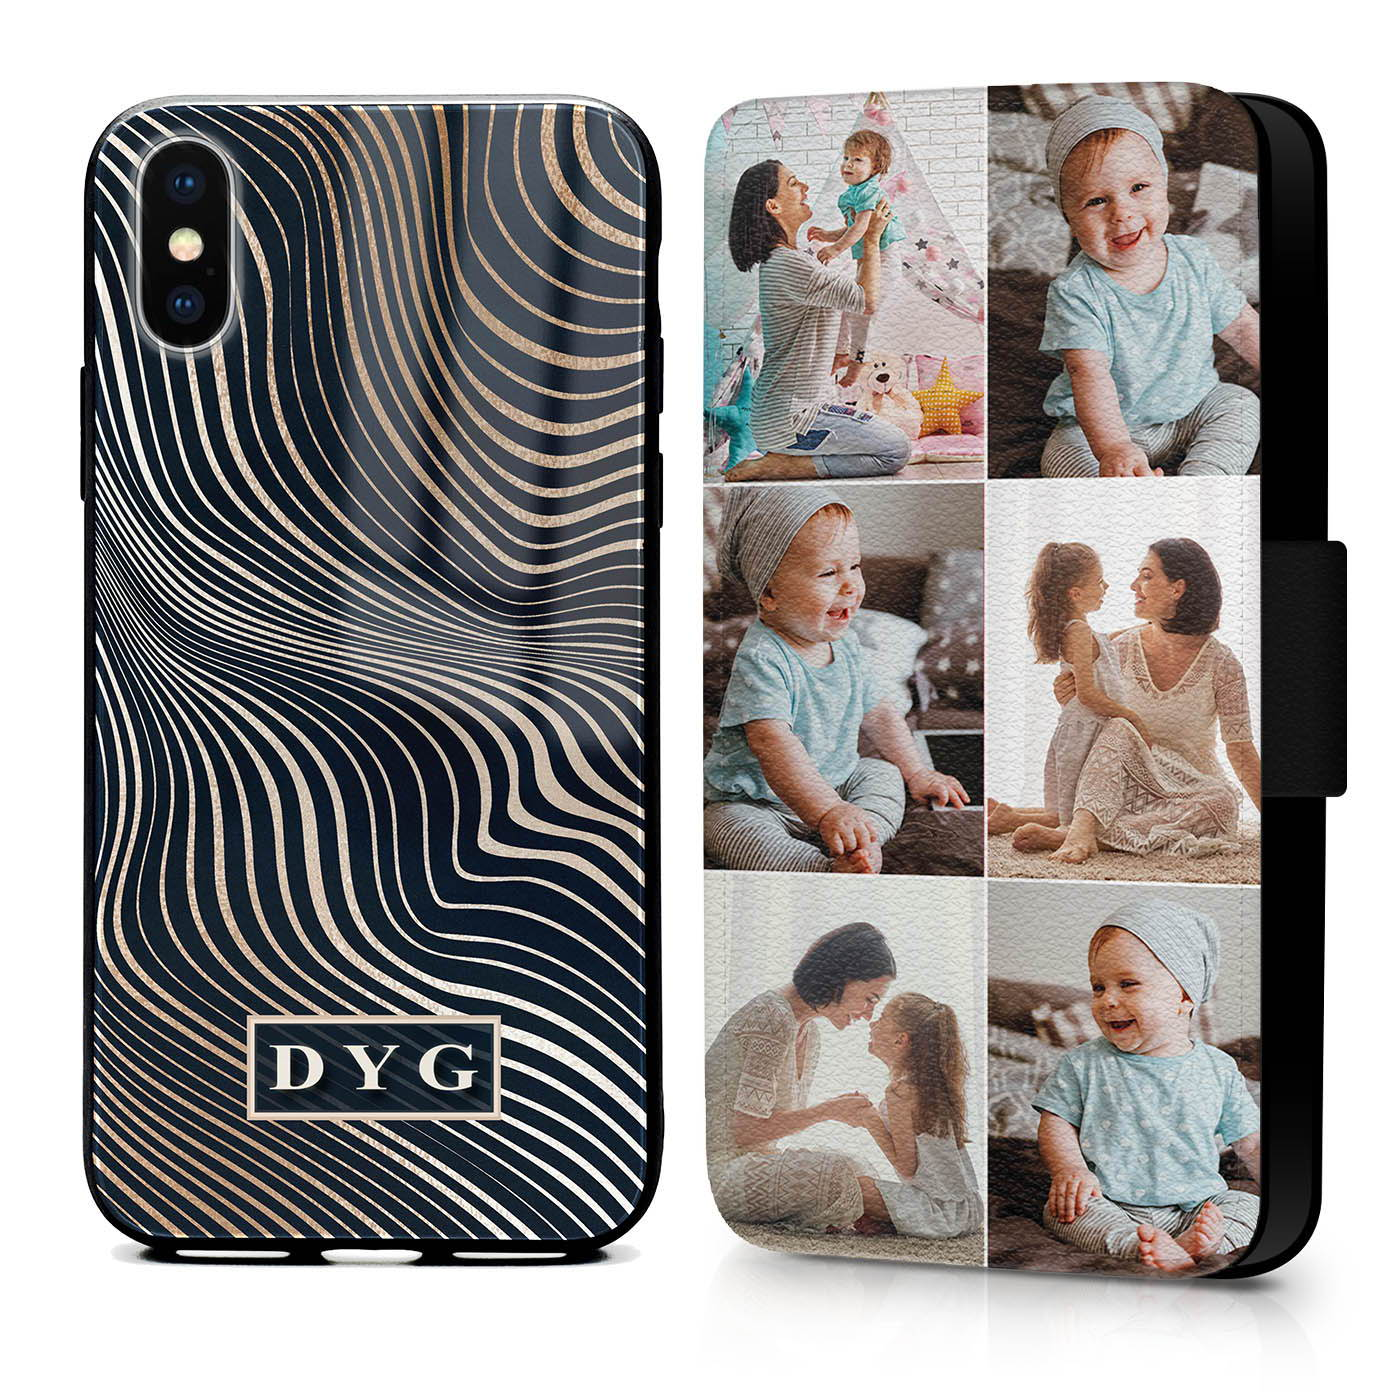 custom phone cases with predesigned templates or your photos 42% off